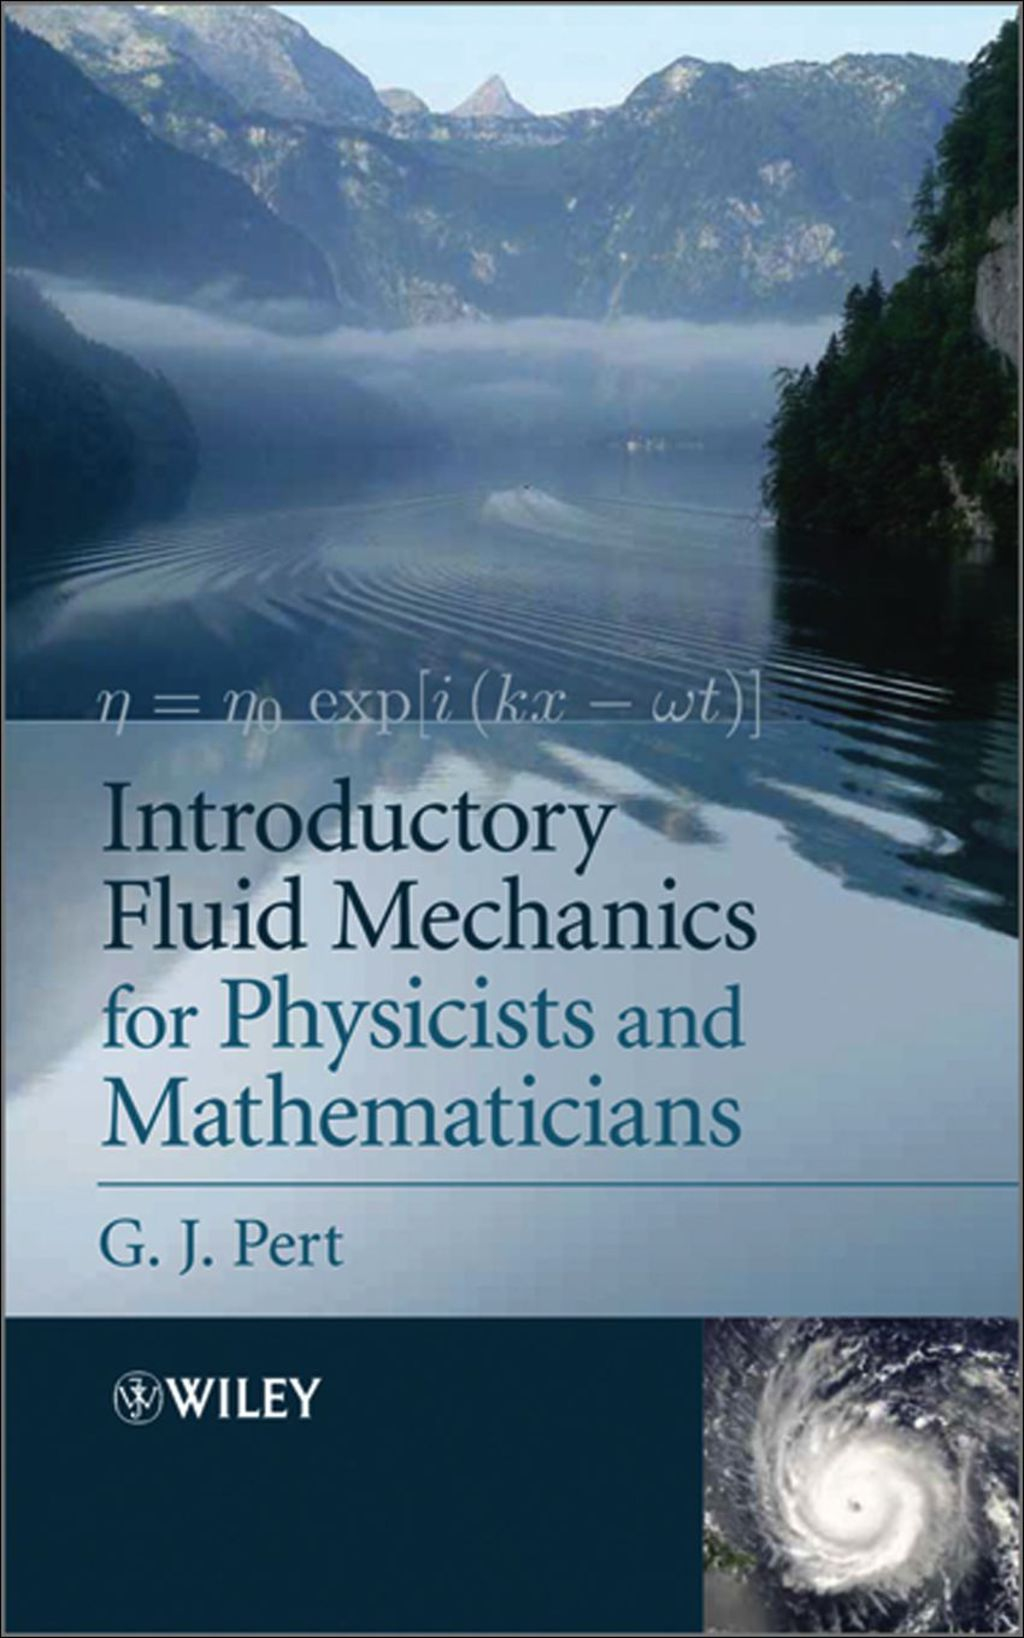 Introductory Fluid Mechanics for Physicists and Mathematicians (eBook)